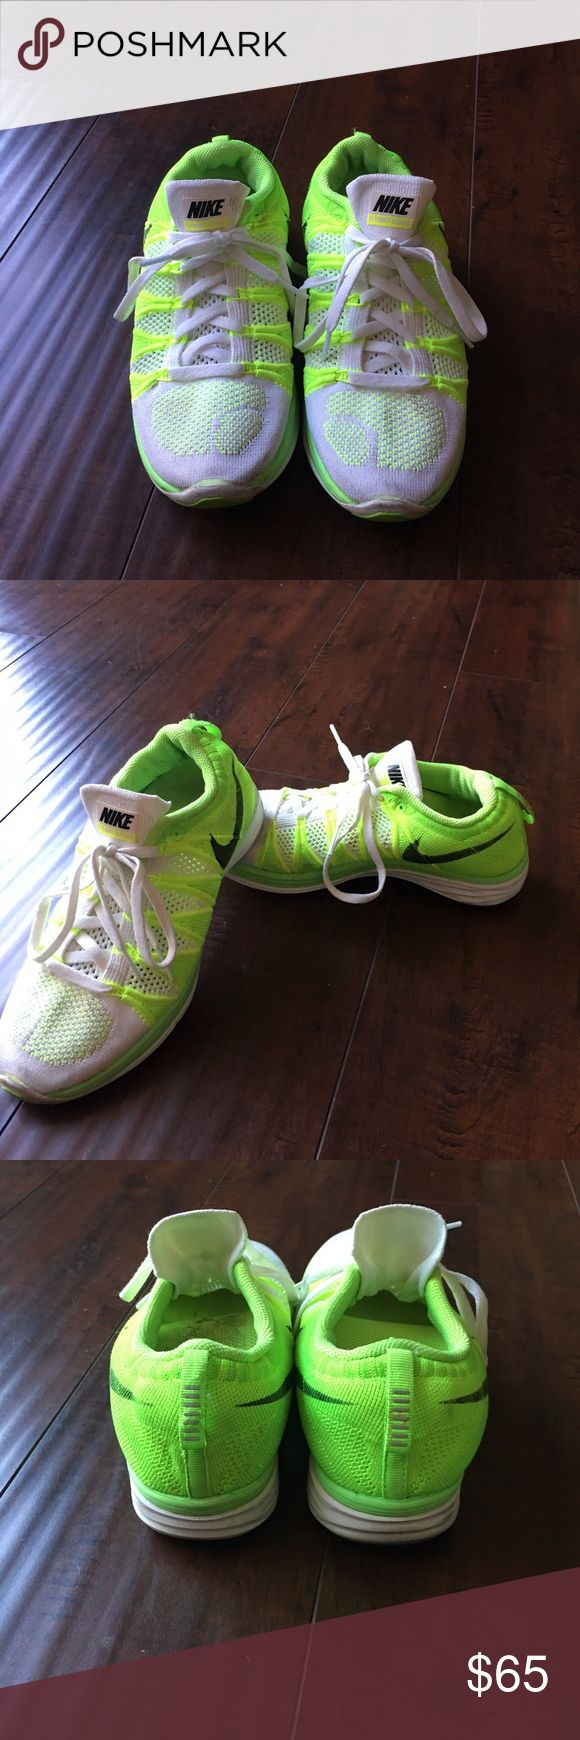 Nike Women's athletic shoe Nike Women's Lunarlon white with like green Shoes Athletic Shoes